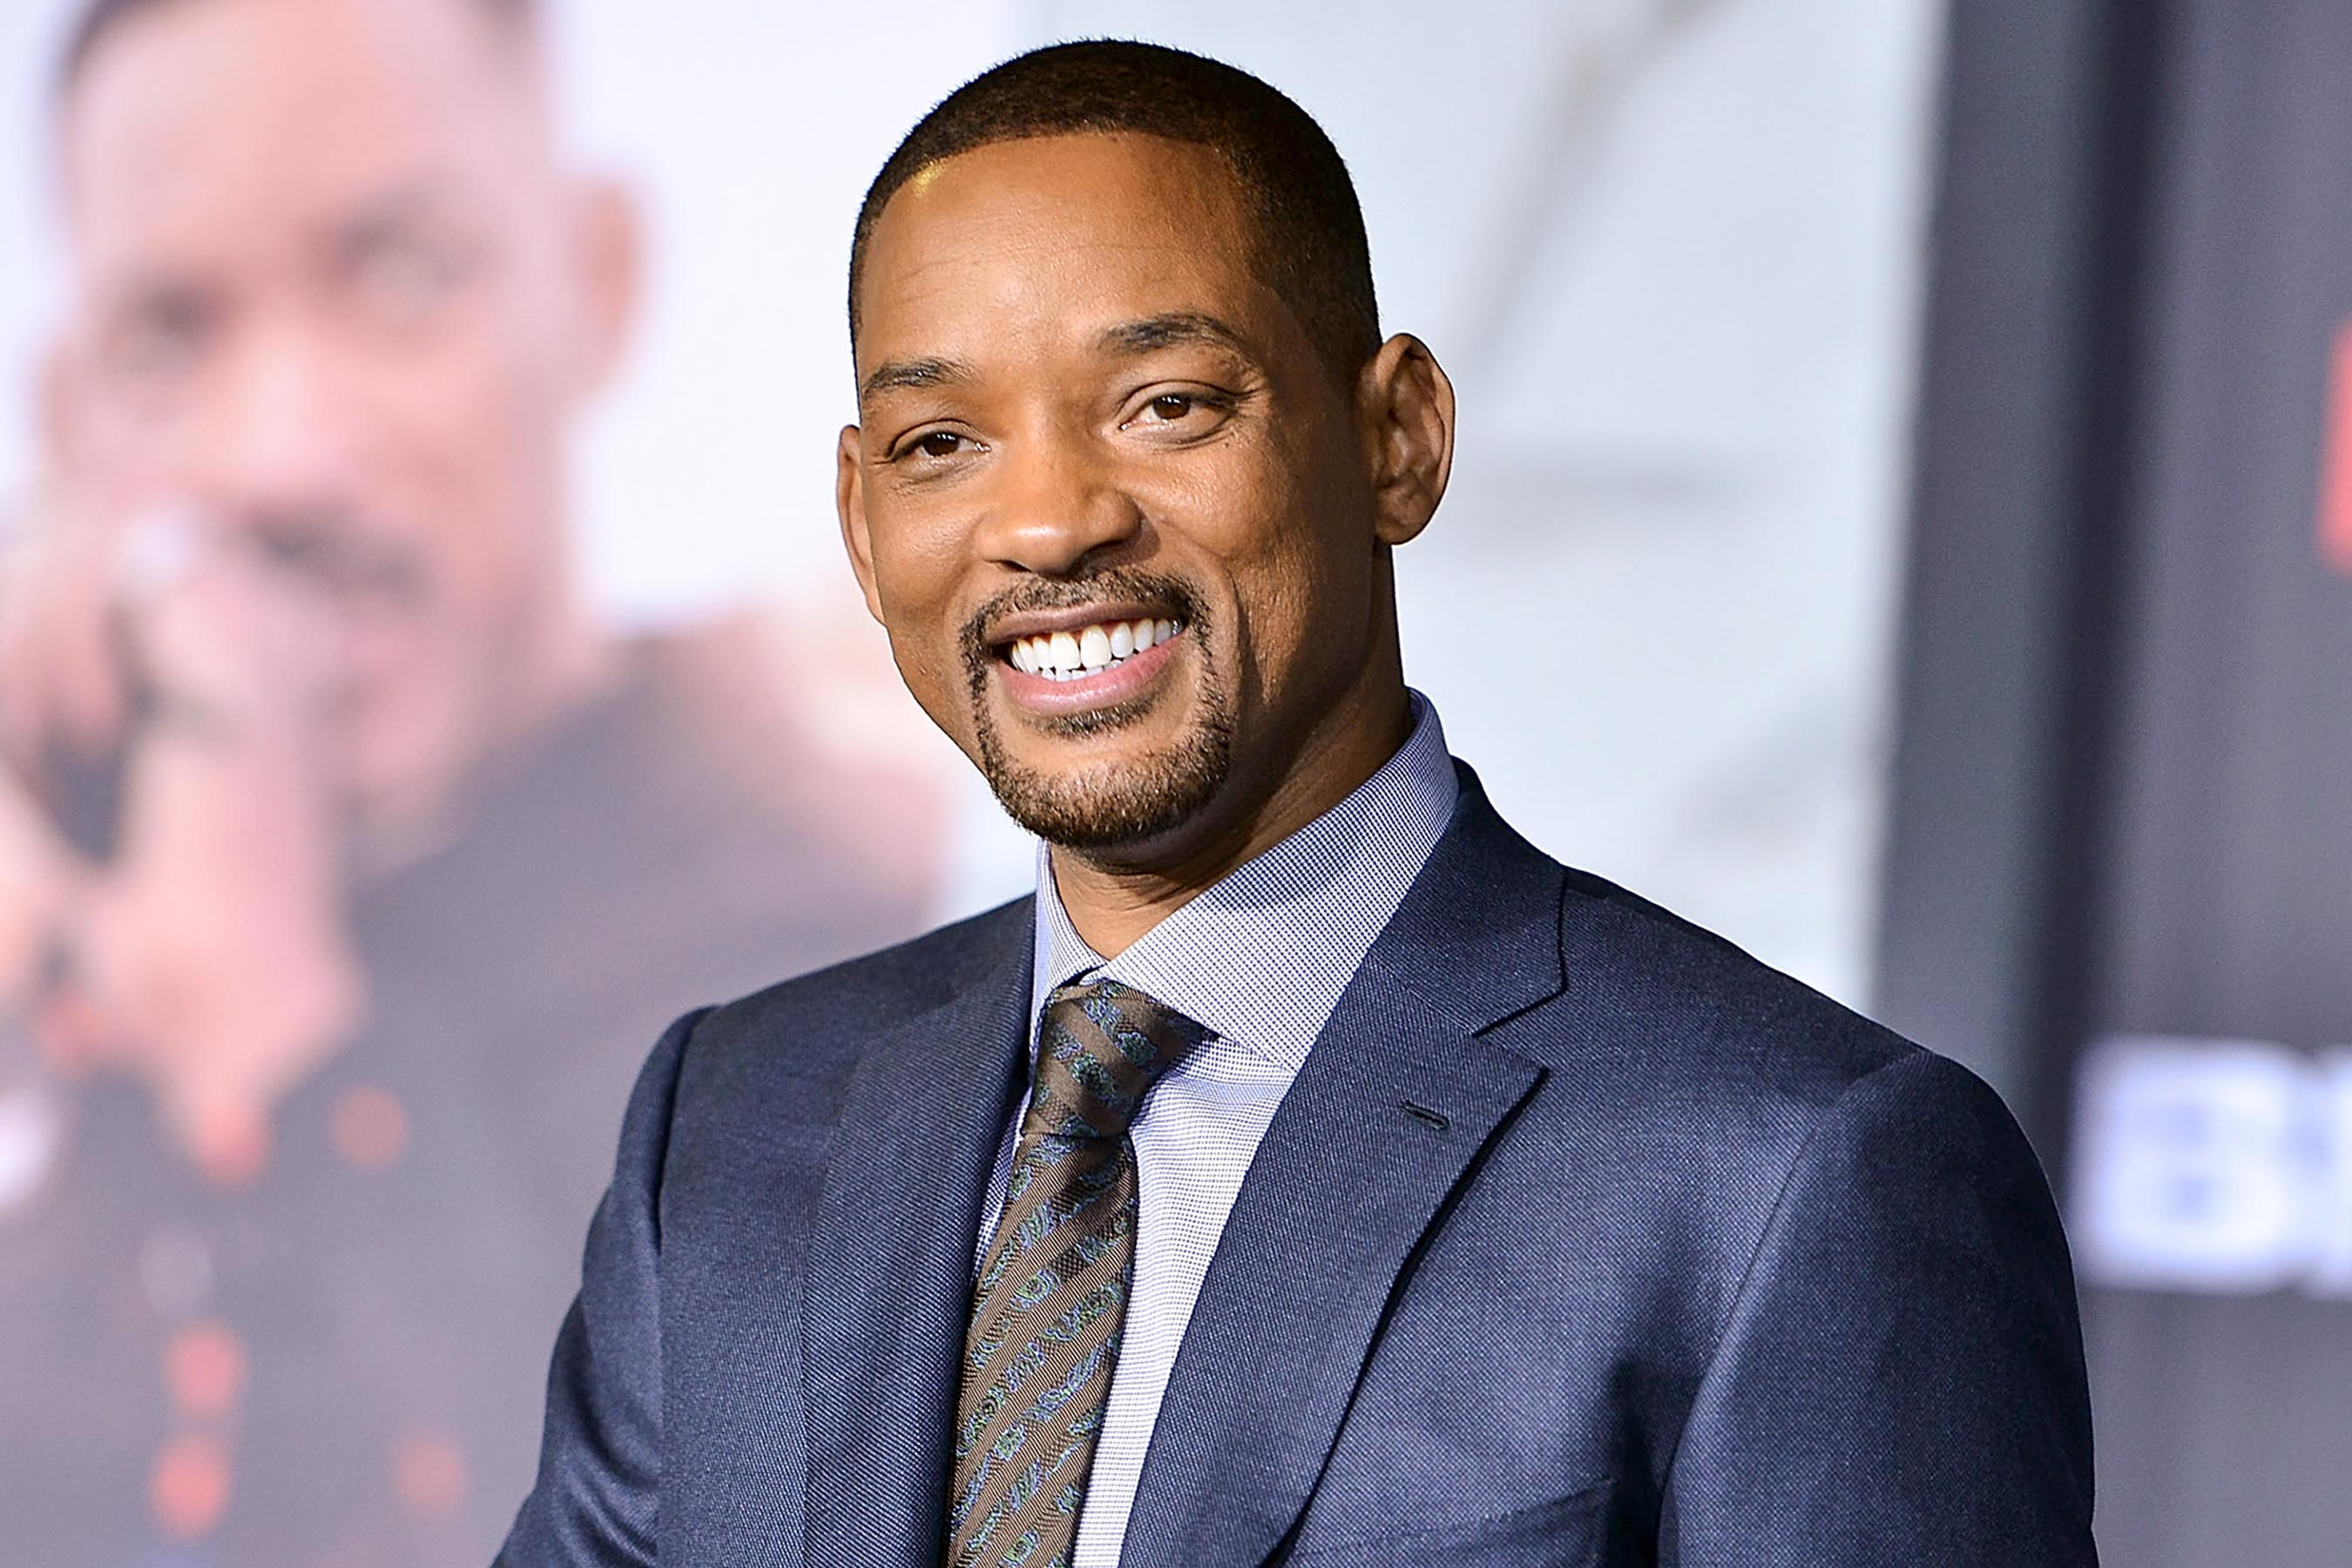 """WESTWOOD, CA - DECEMBER 13: Will Smith attends the premiere of Netflix's """"Bright"""" at Regency Village Theatre on December 13, 2017 in Westwood, California. (Photo by Araya Diaz/WireImage)"""